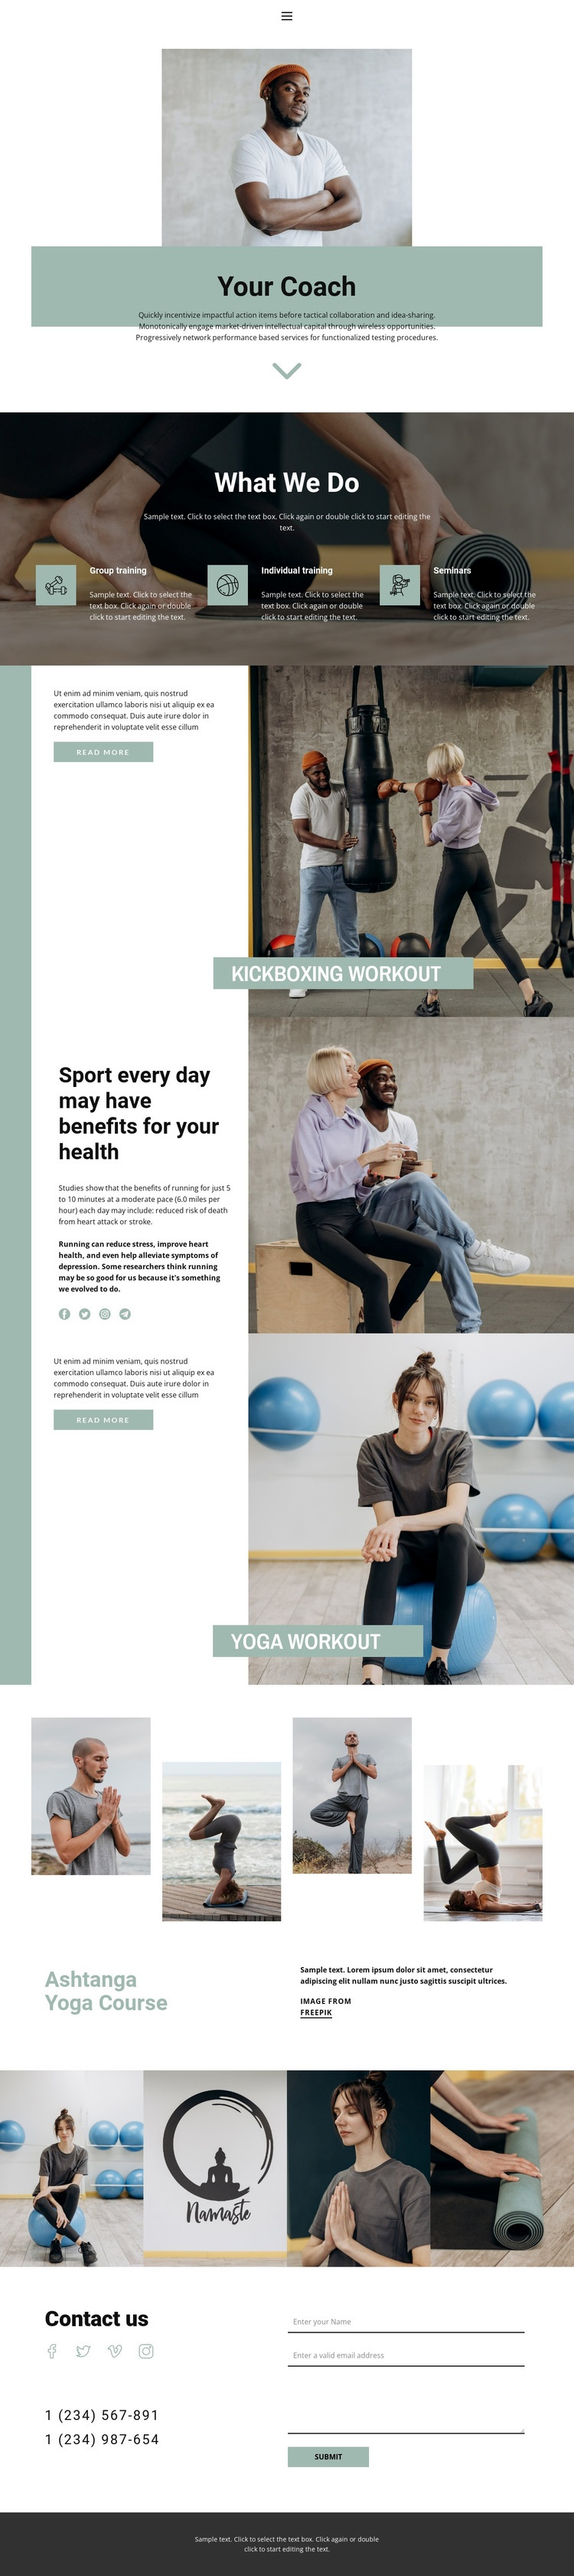 Sport sections Web Page Design